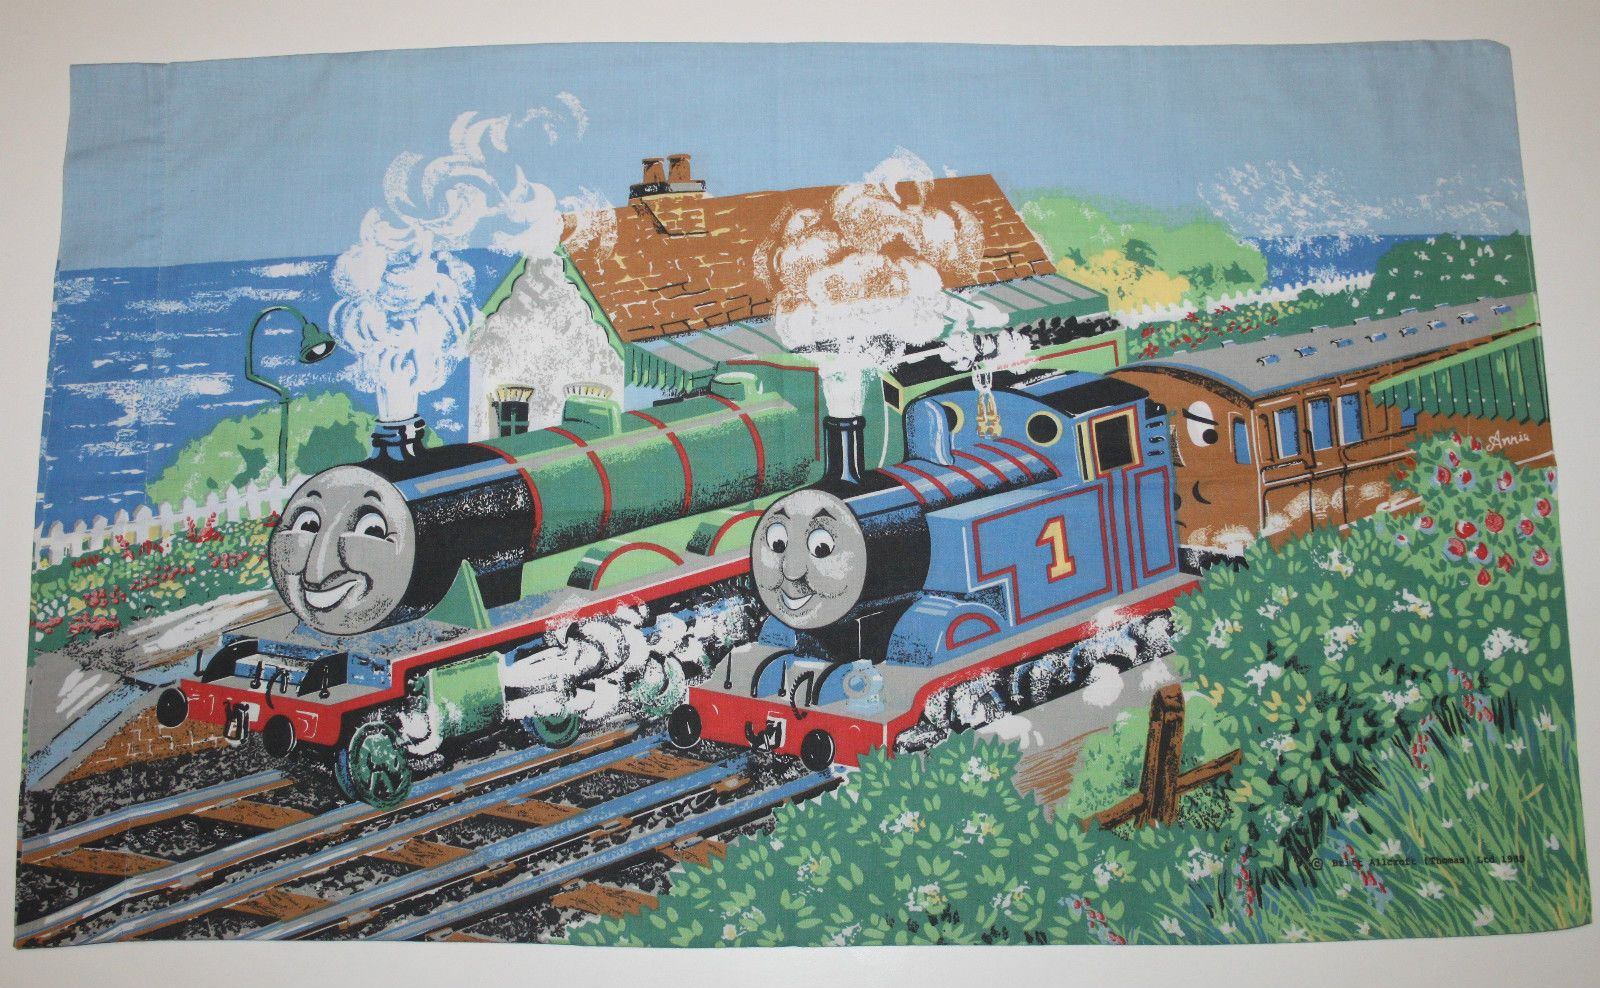 Thomas The Train Pillowcase Stunning Vintage Britt Allcroft 1989 Thomas Train Tank Engine Duvet Cover Review